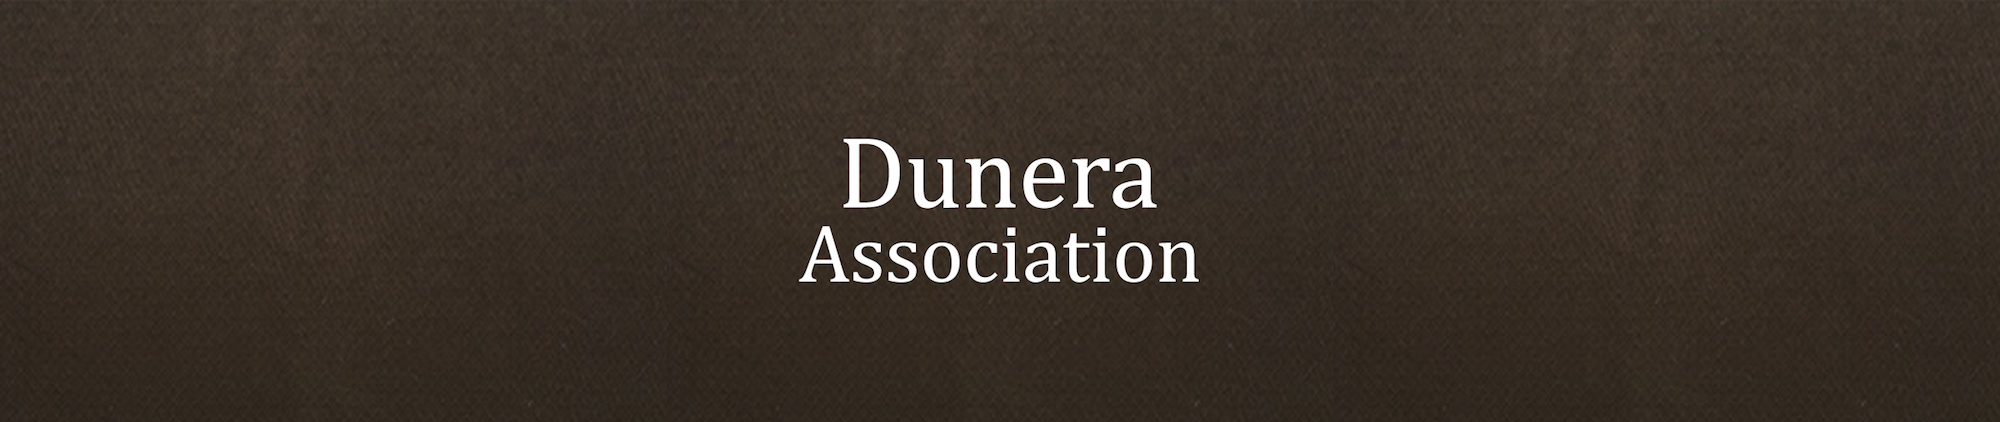 The Dunera Association